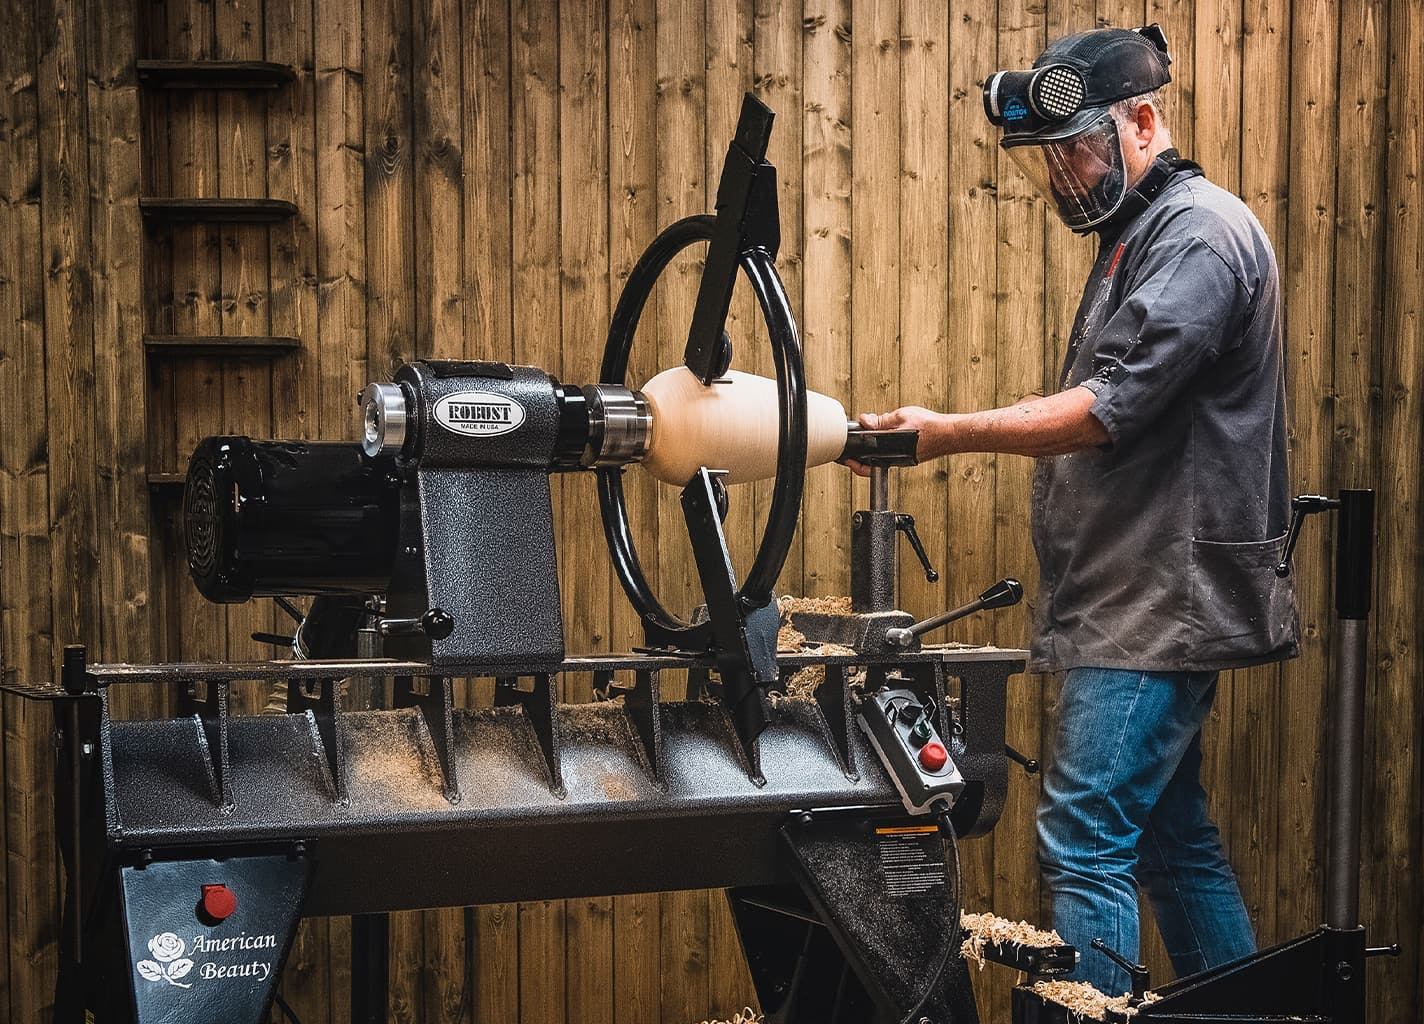 Woodturning Lathes from Robust Tools